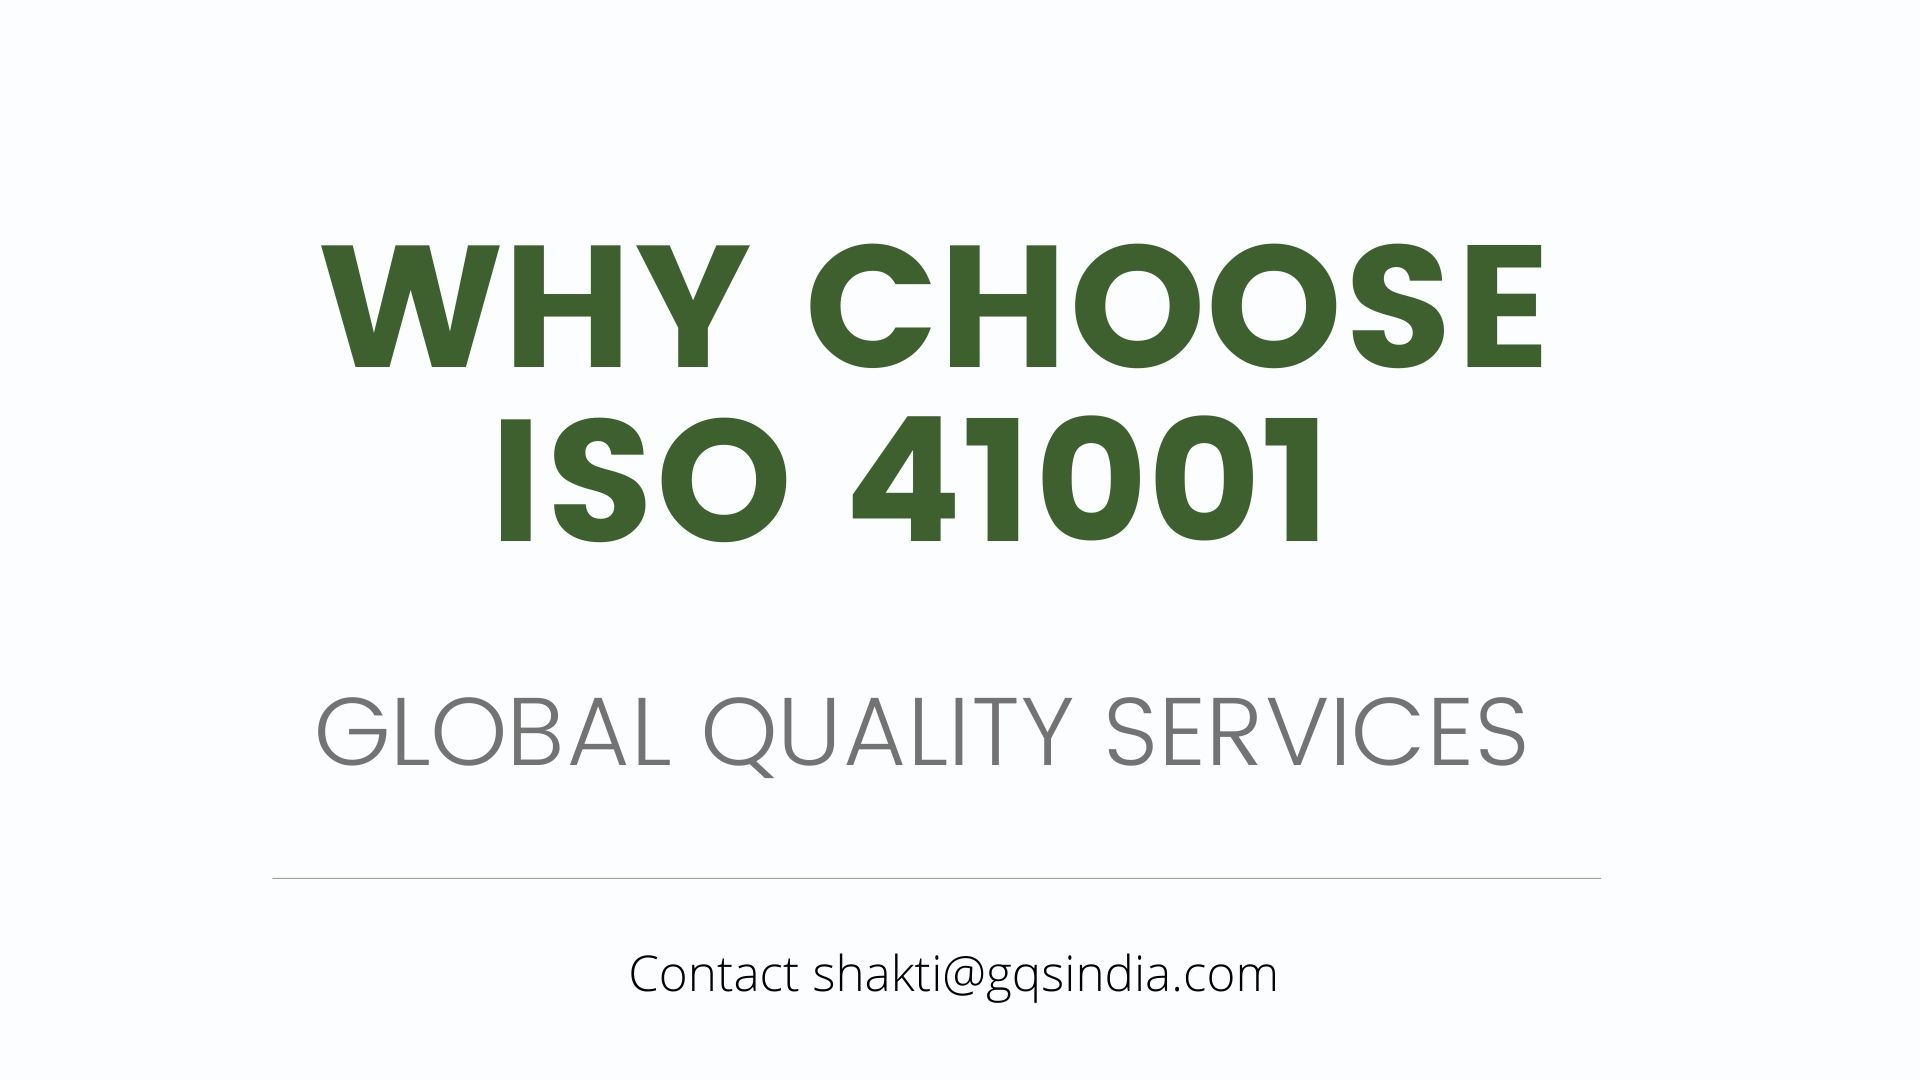 WHY CHOOSE ISO 41001 WITH GLOBAL QUALITY SERVICE